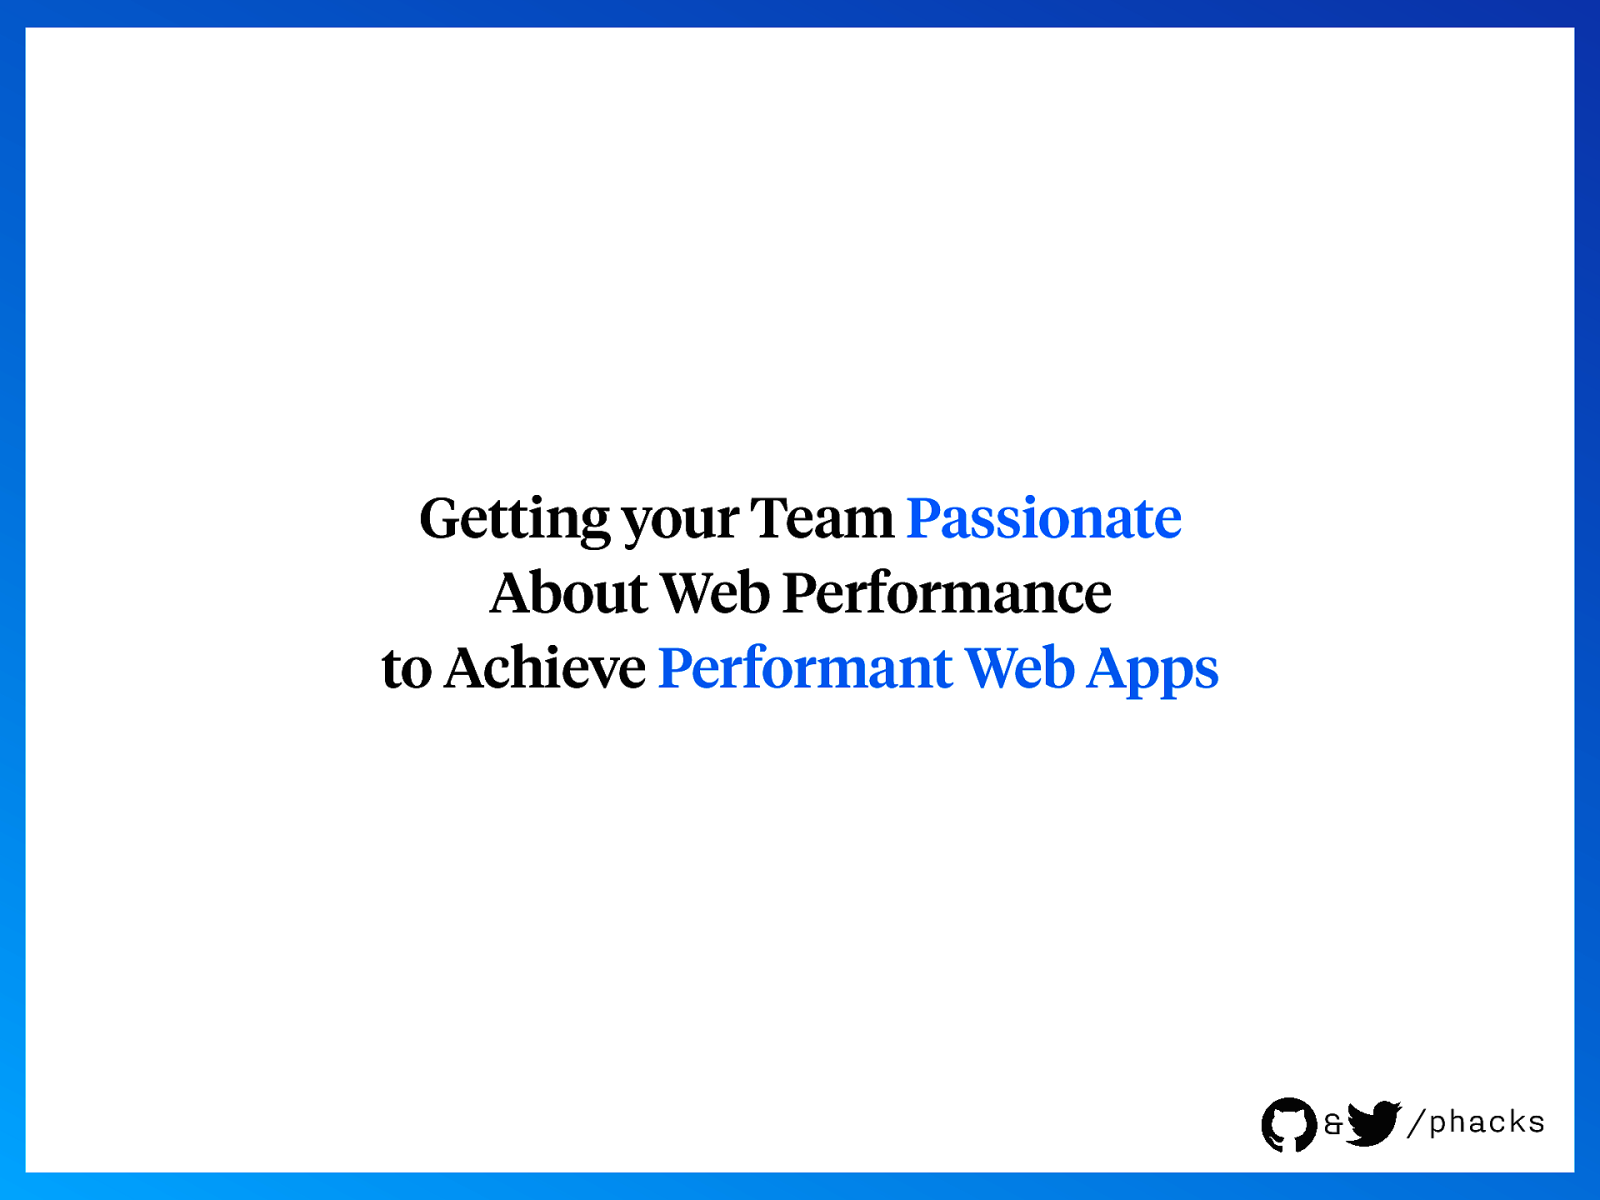 Getting your Team Passionate About Web Performance to Achieve Performant Web Apps